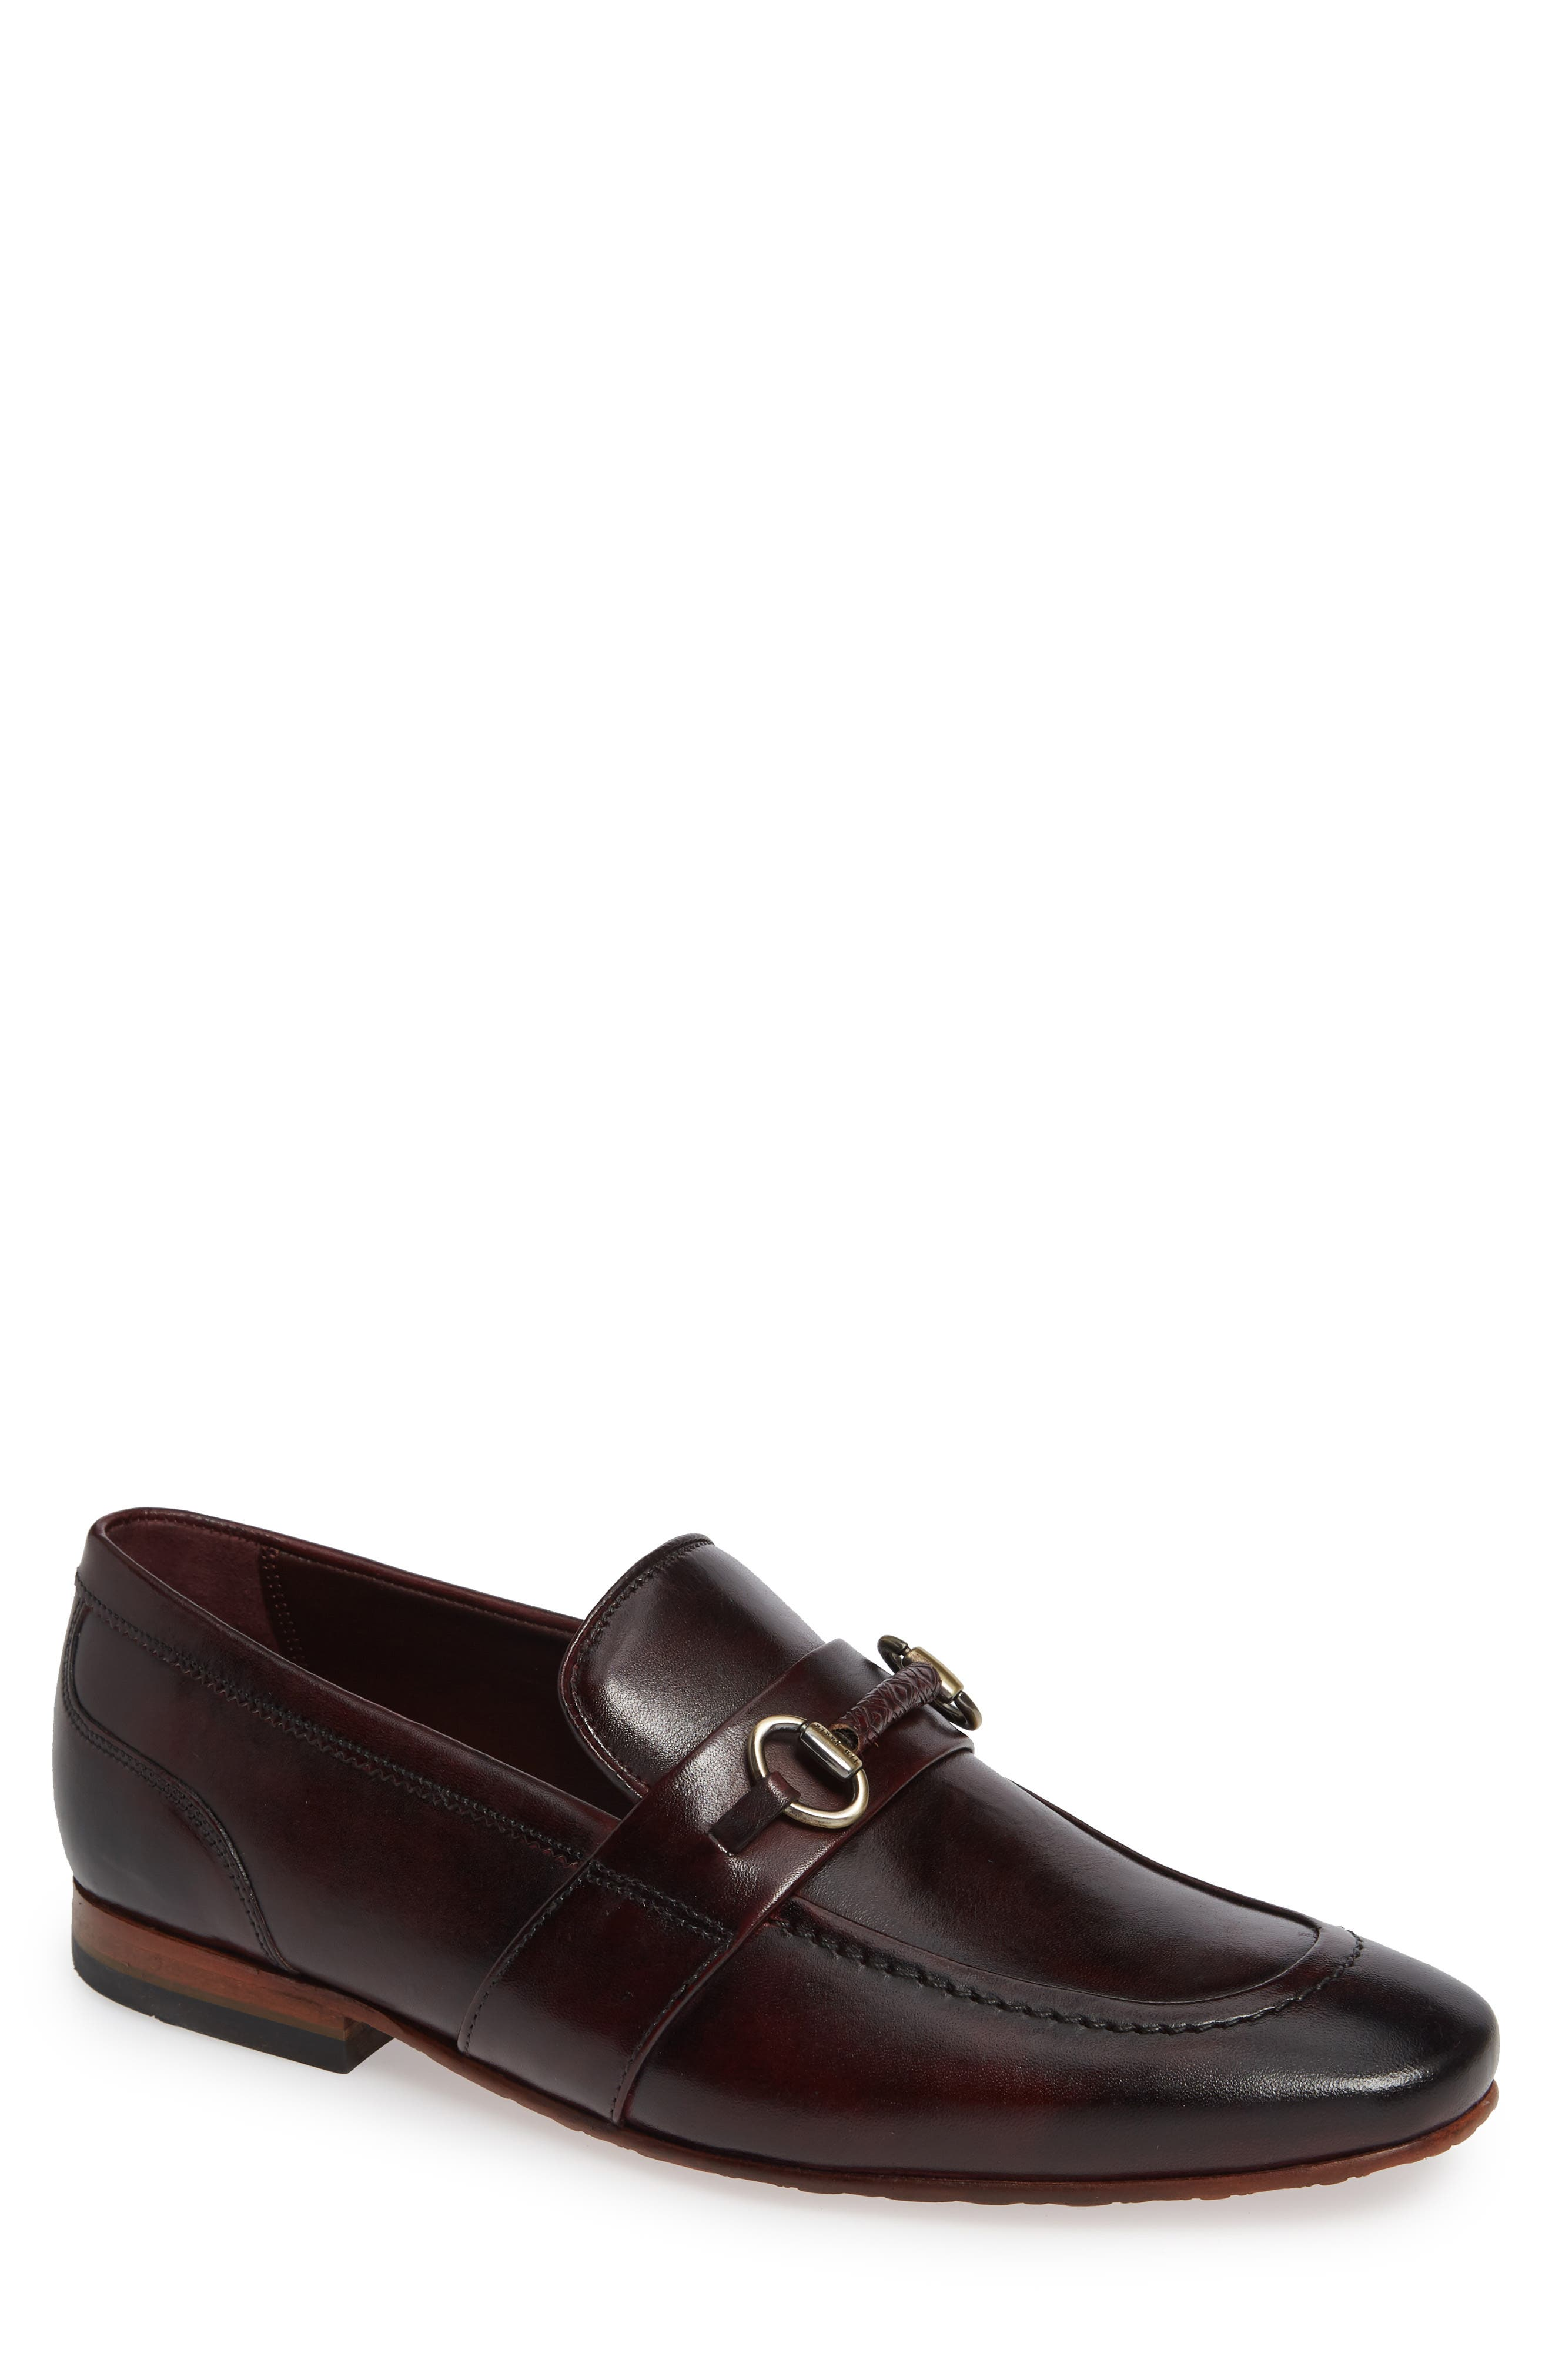 Daiser Bit Loafer,                         Main,                         color, DARK RED LEATHER